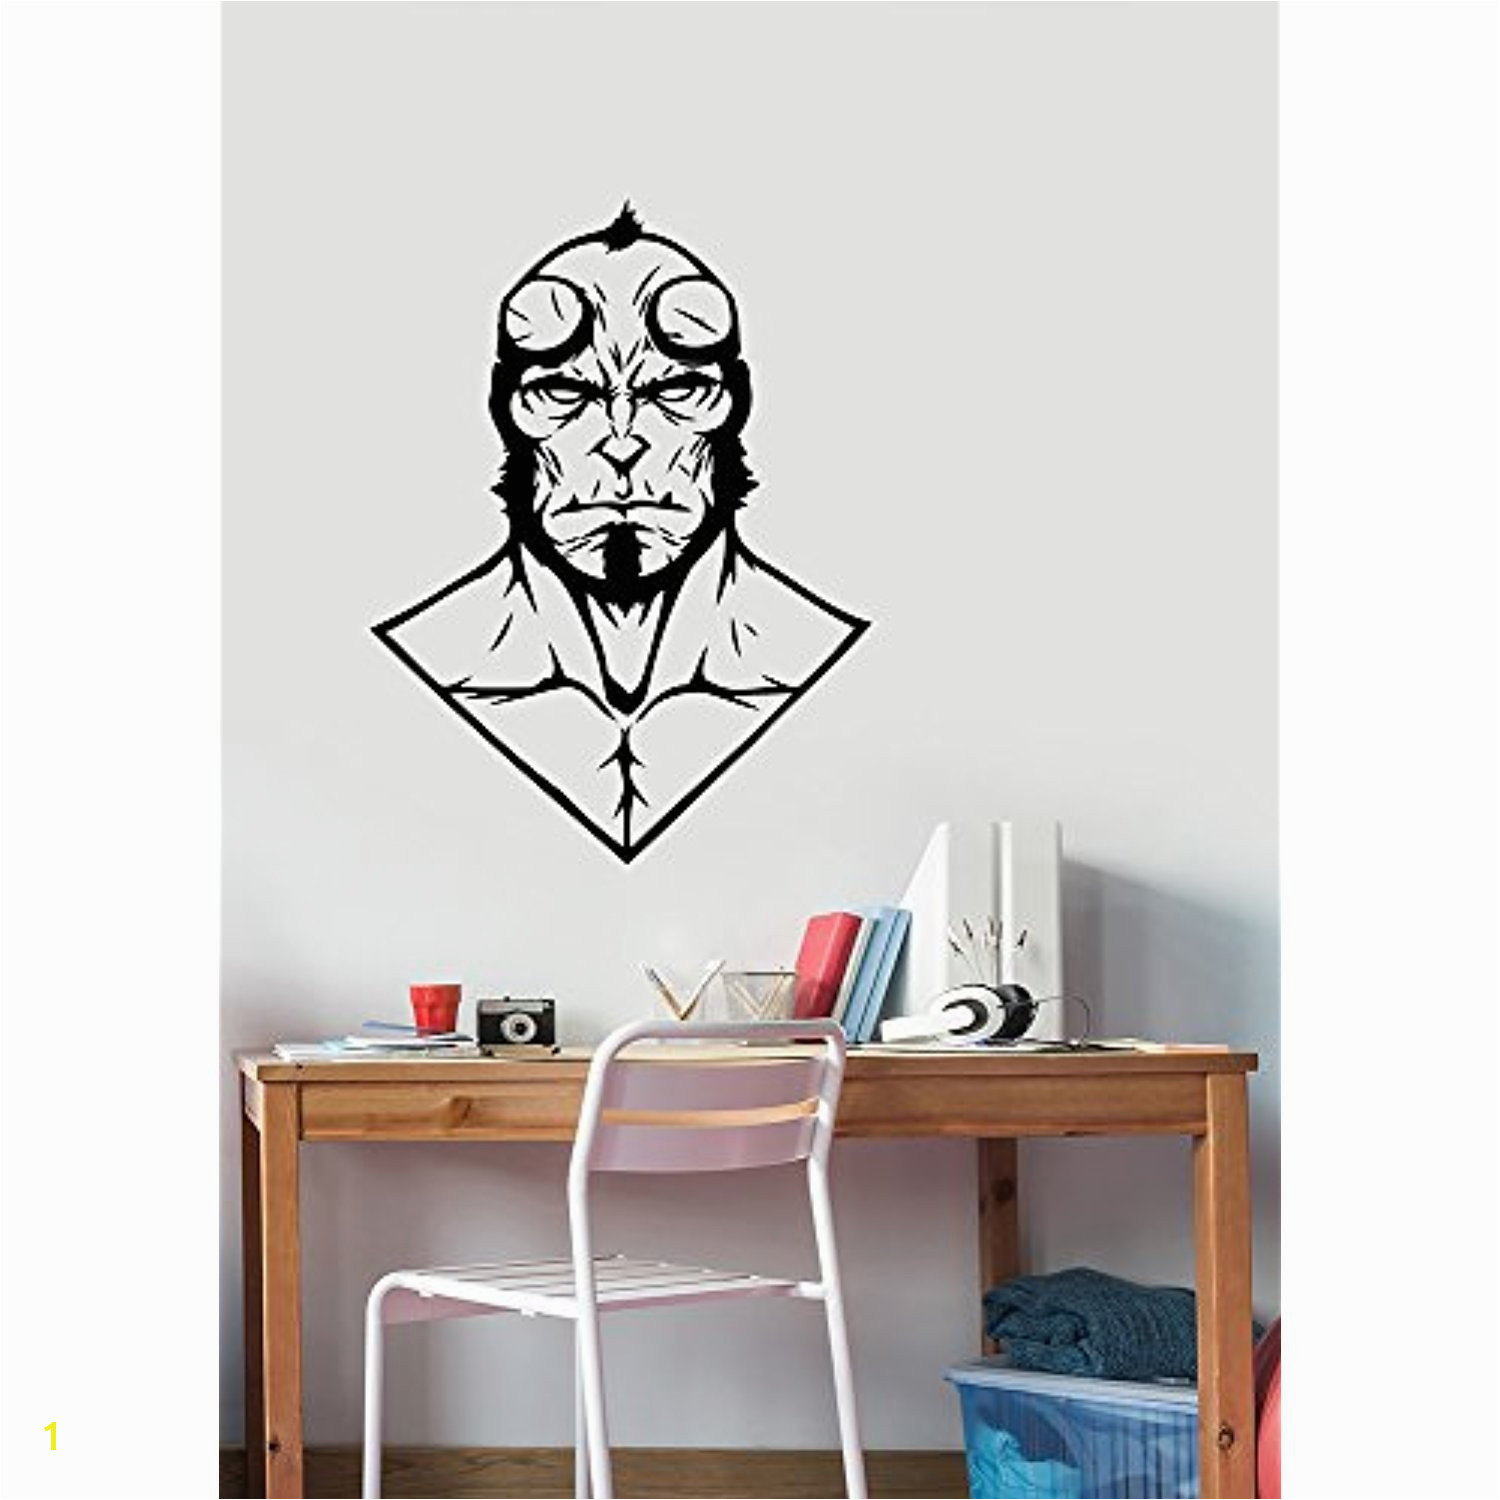 Wwe Wall Murals Wwe Bedroom Decorations Inspirational Wall Decals for Bedroom Unique